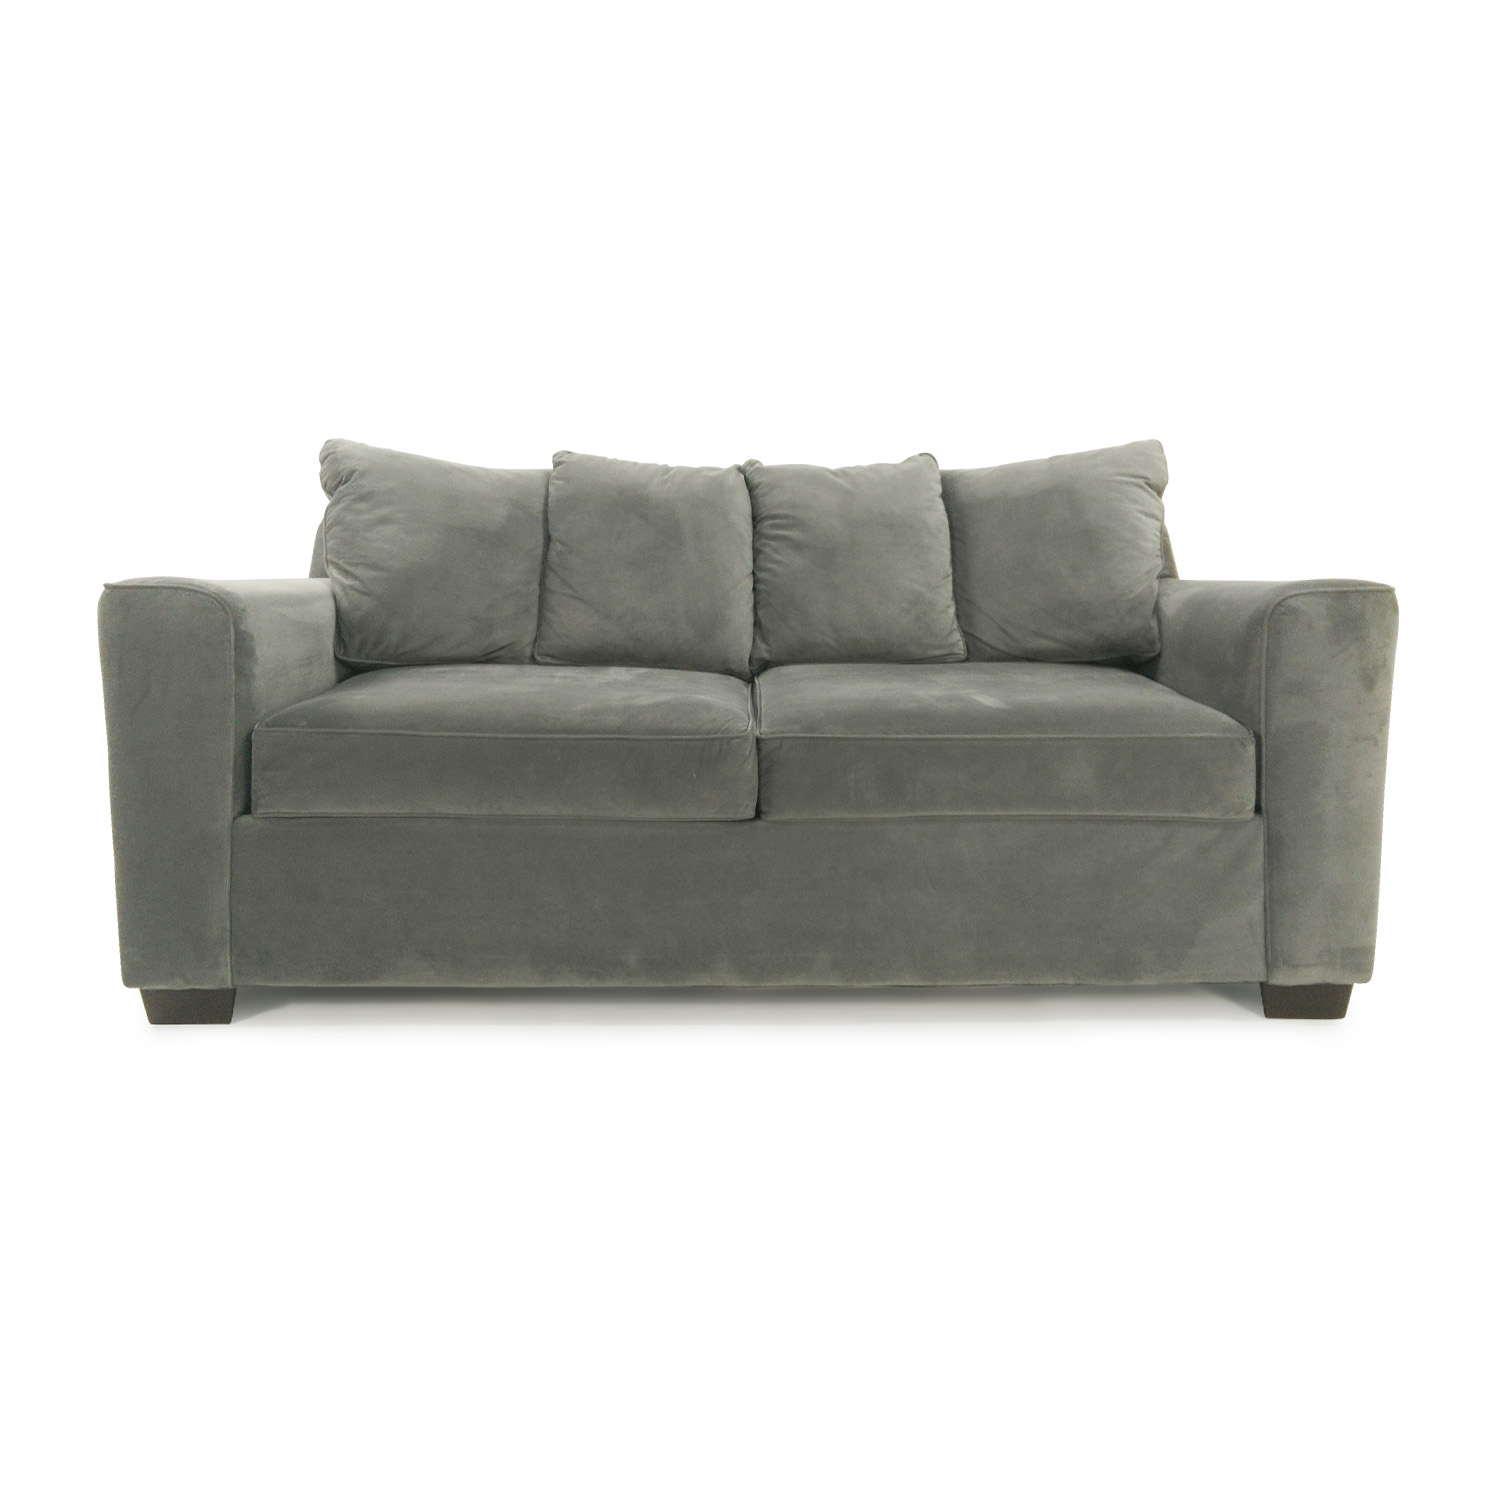 Jennifer convertibles sofa jennifer convertibles sectional for Sectional sofa jennifer convertible